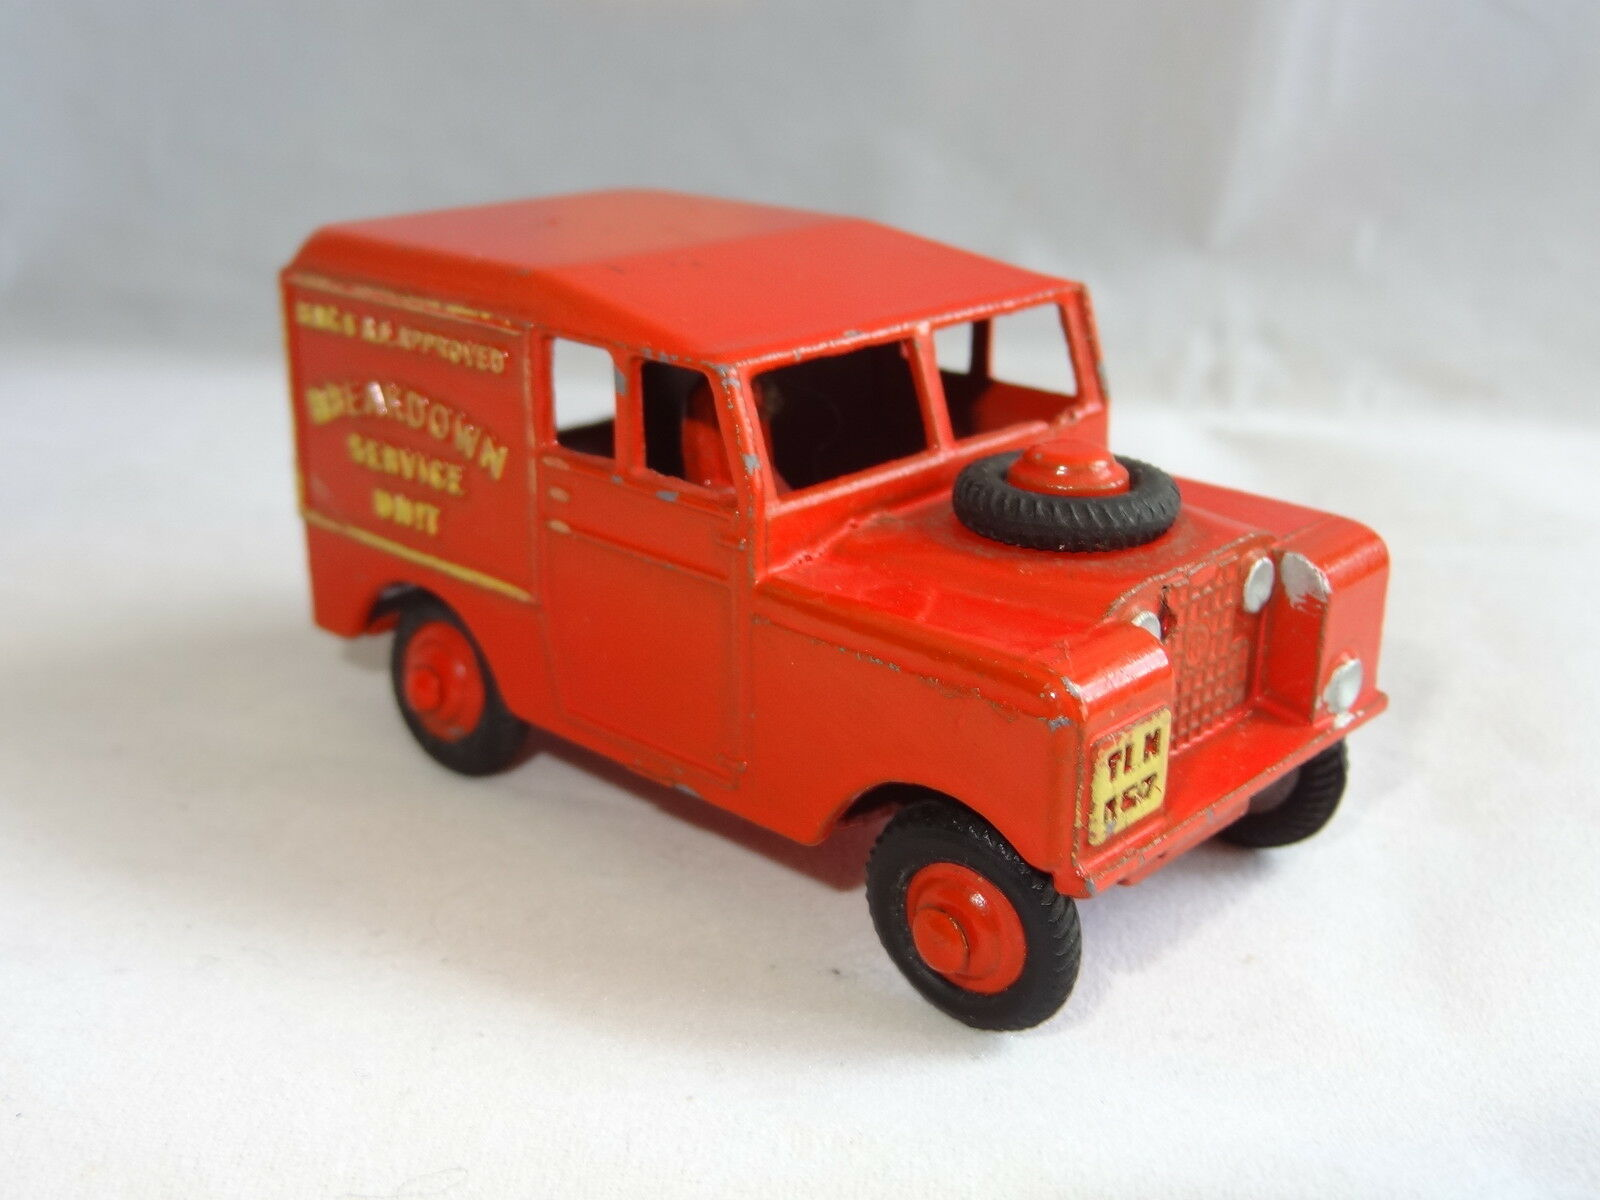 Morestone large scale BREAKDOWN SERVICE LANDROVER 1958 - 79MM